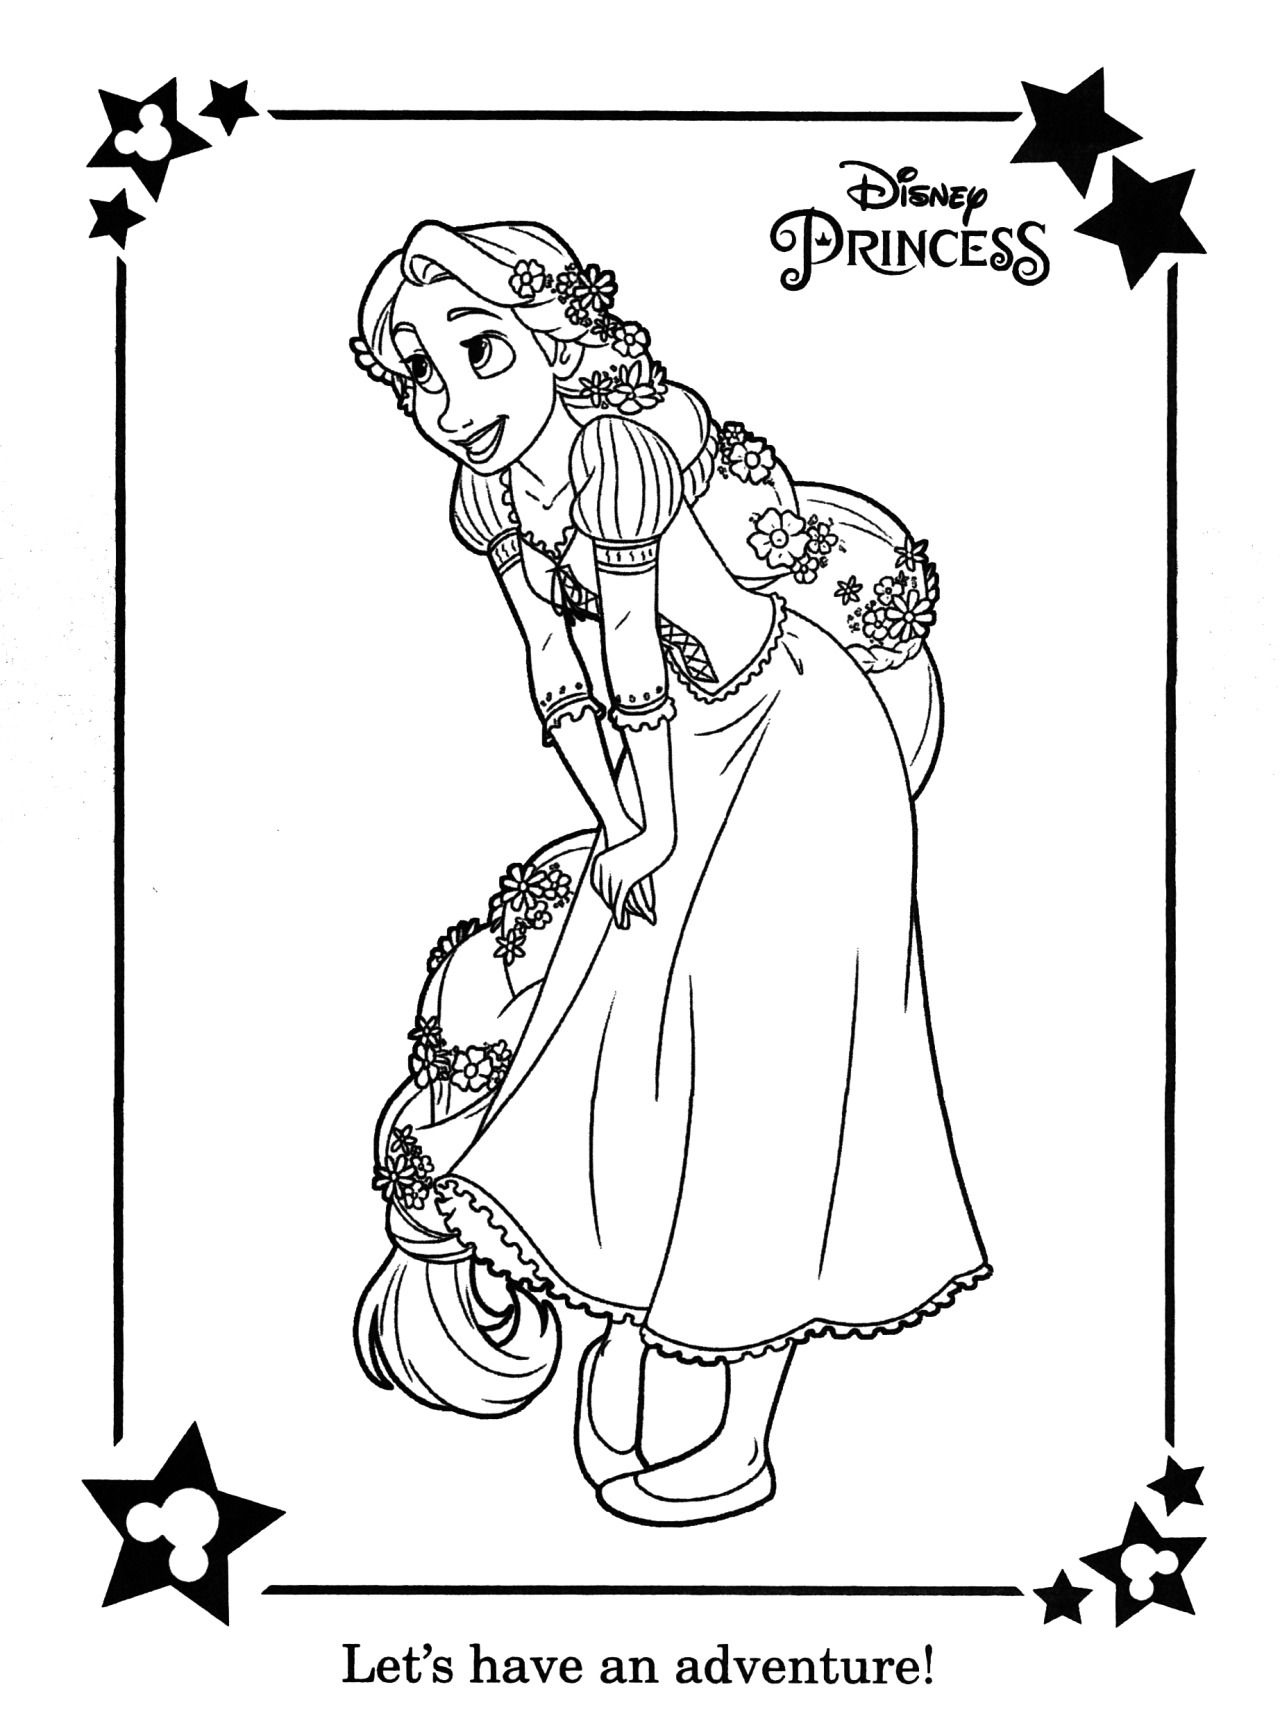 Coloring pages tangled - Runningracingdancingchasing 2 3 I Picked Up A New Coloring Book The Other Day